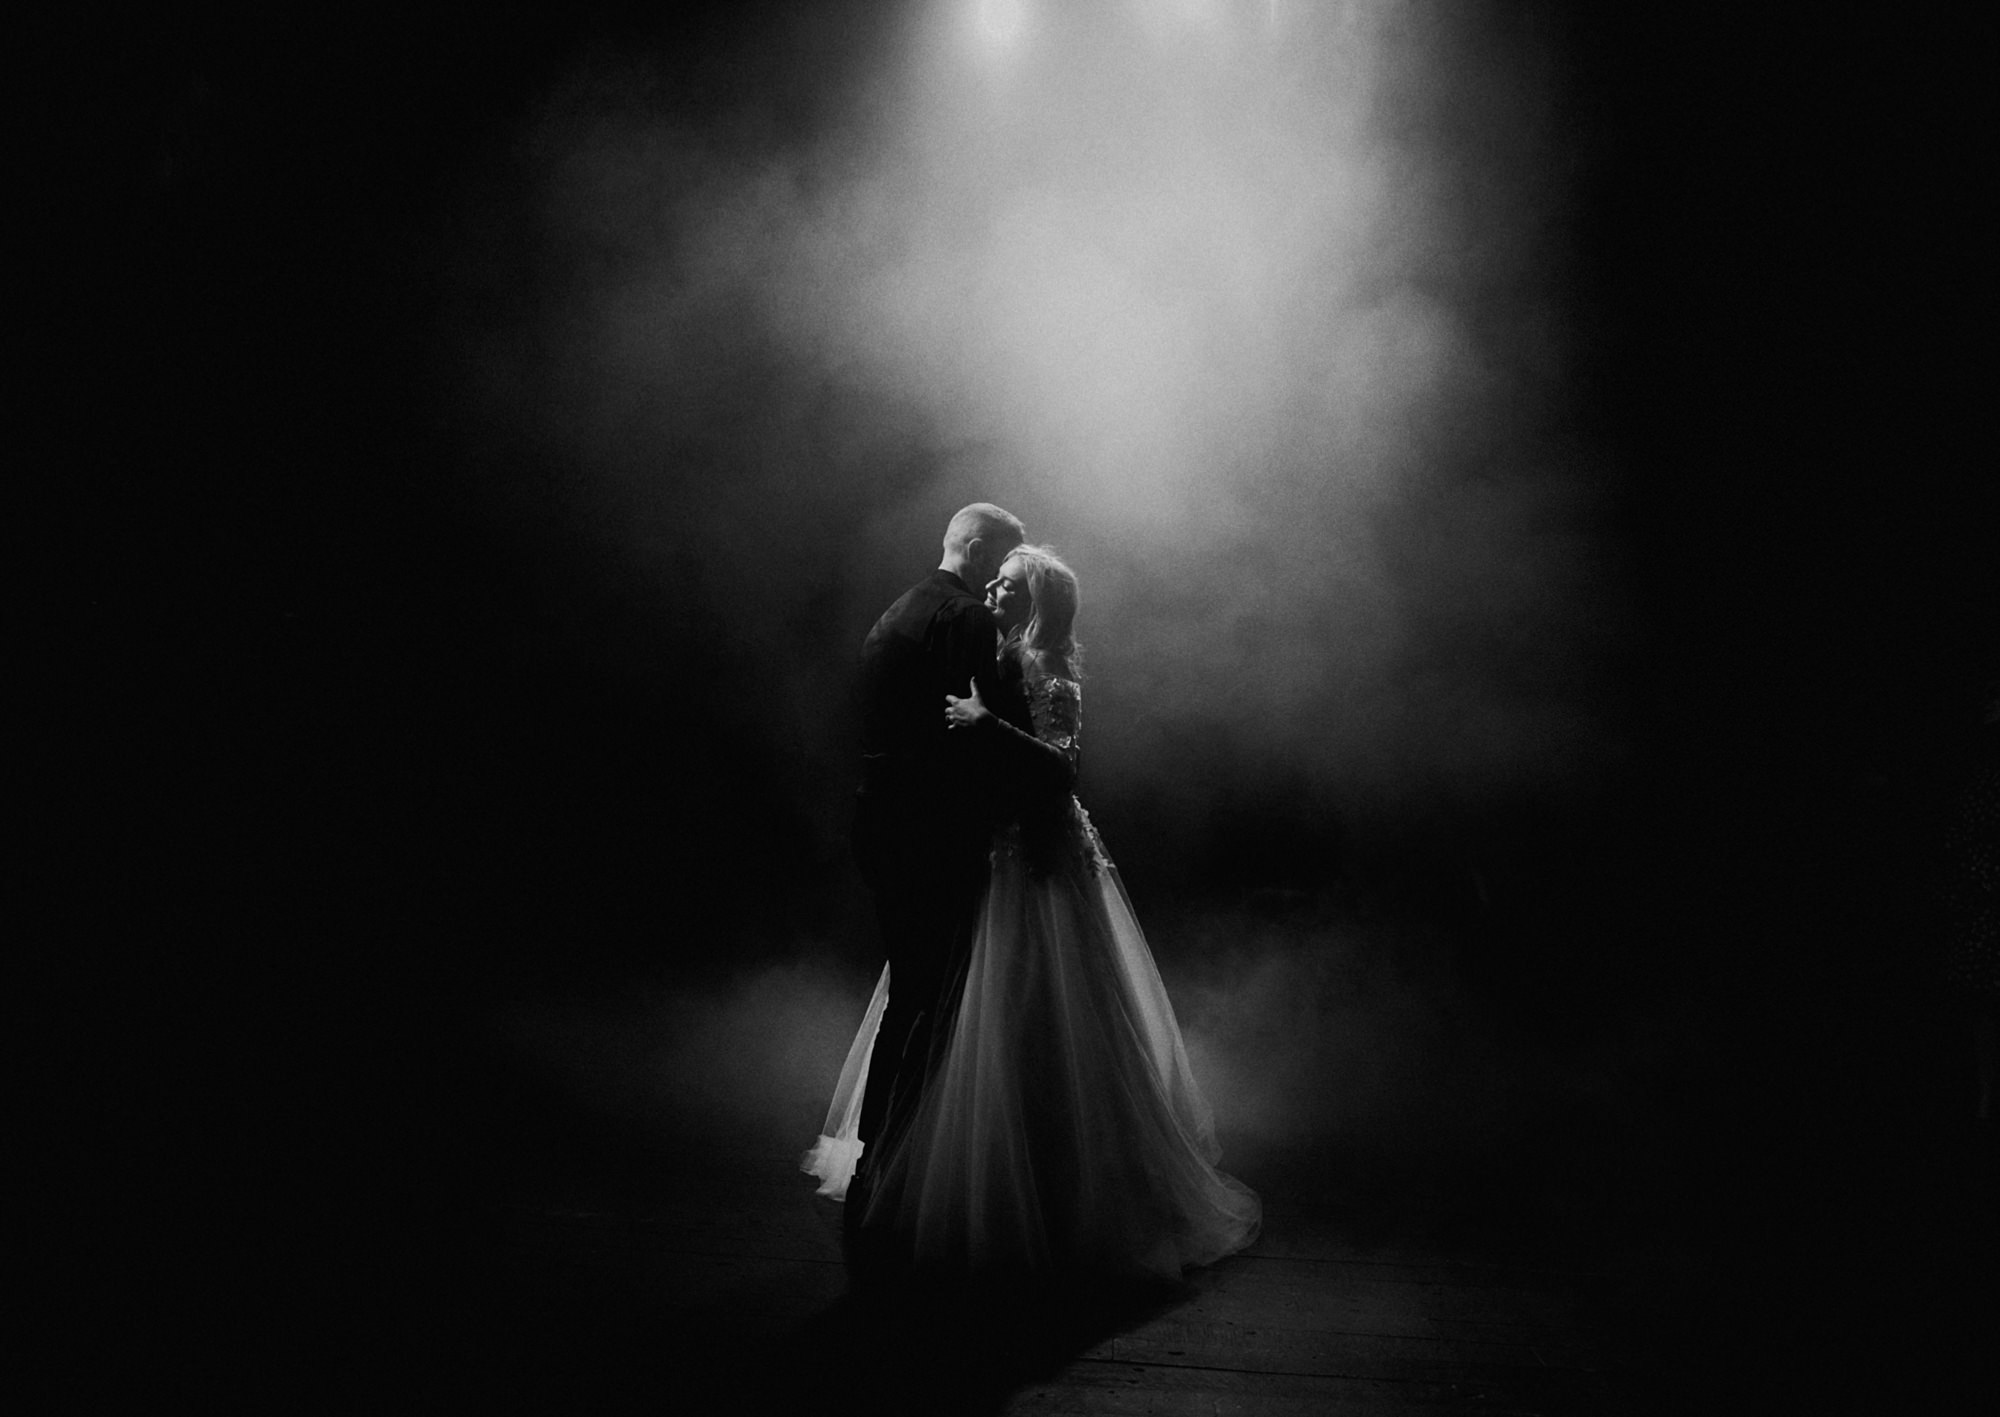 black-and-white-bride-and-groom-dancing-smokey-dancefloor-worlds-best-wedding-photos-dan-o-day-australia-wedding-photographer